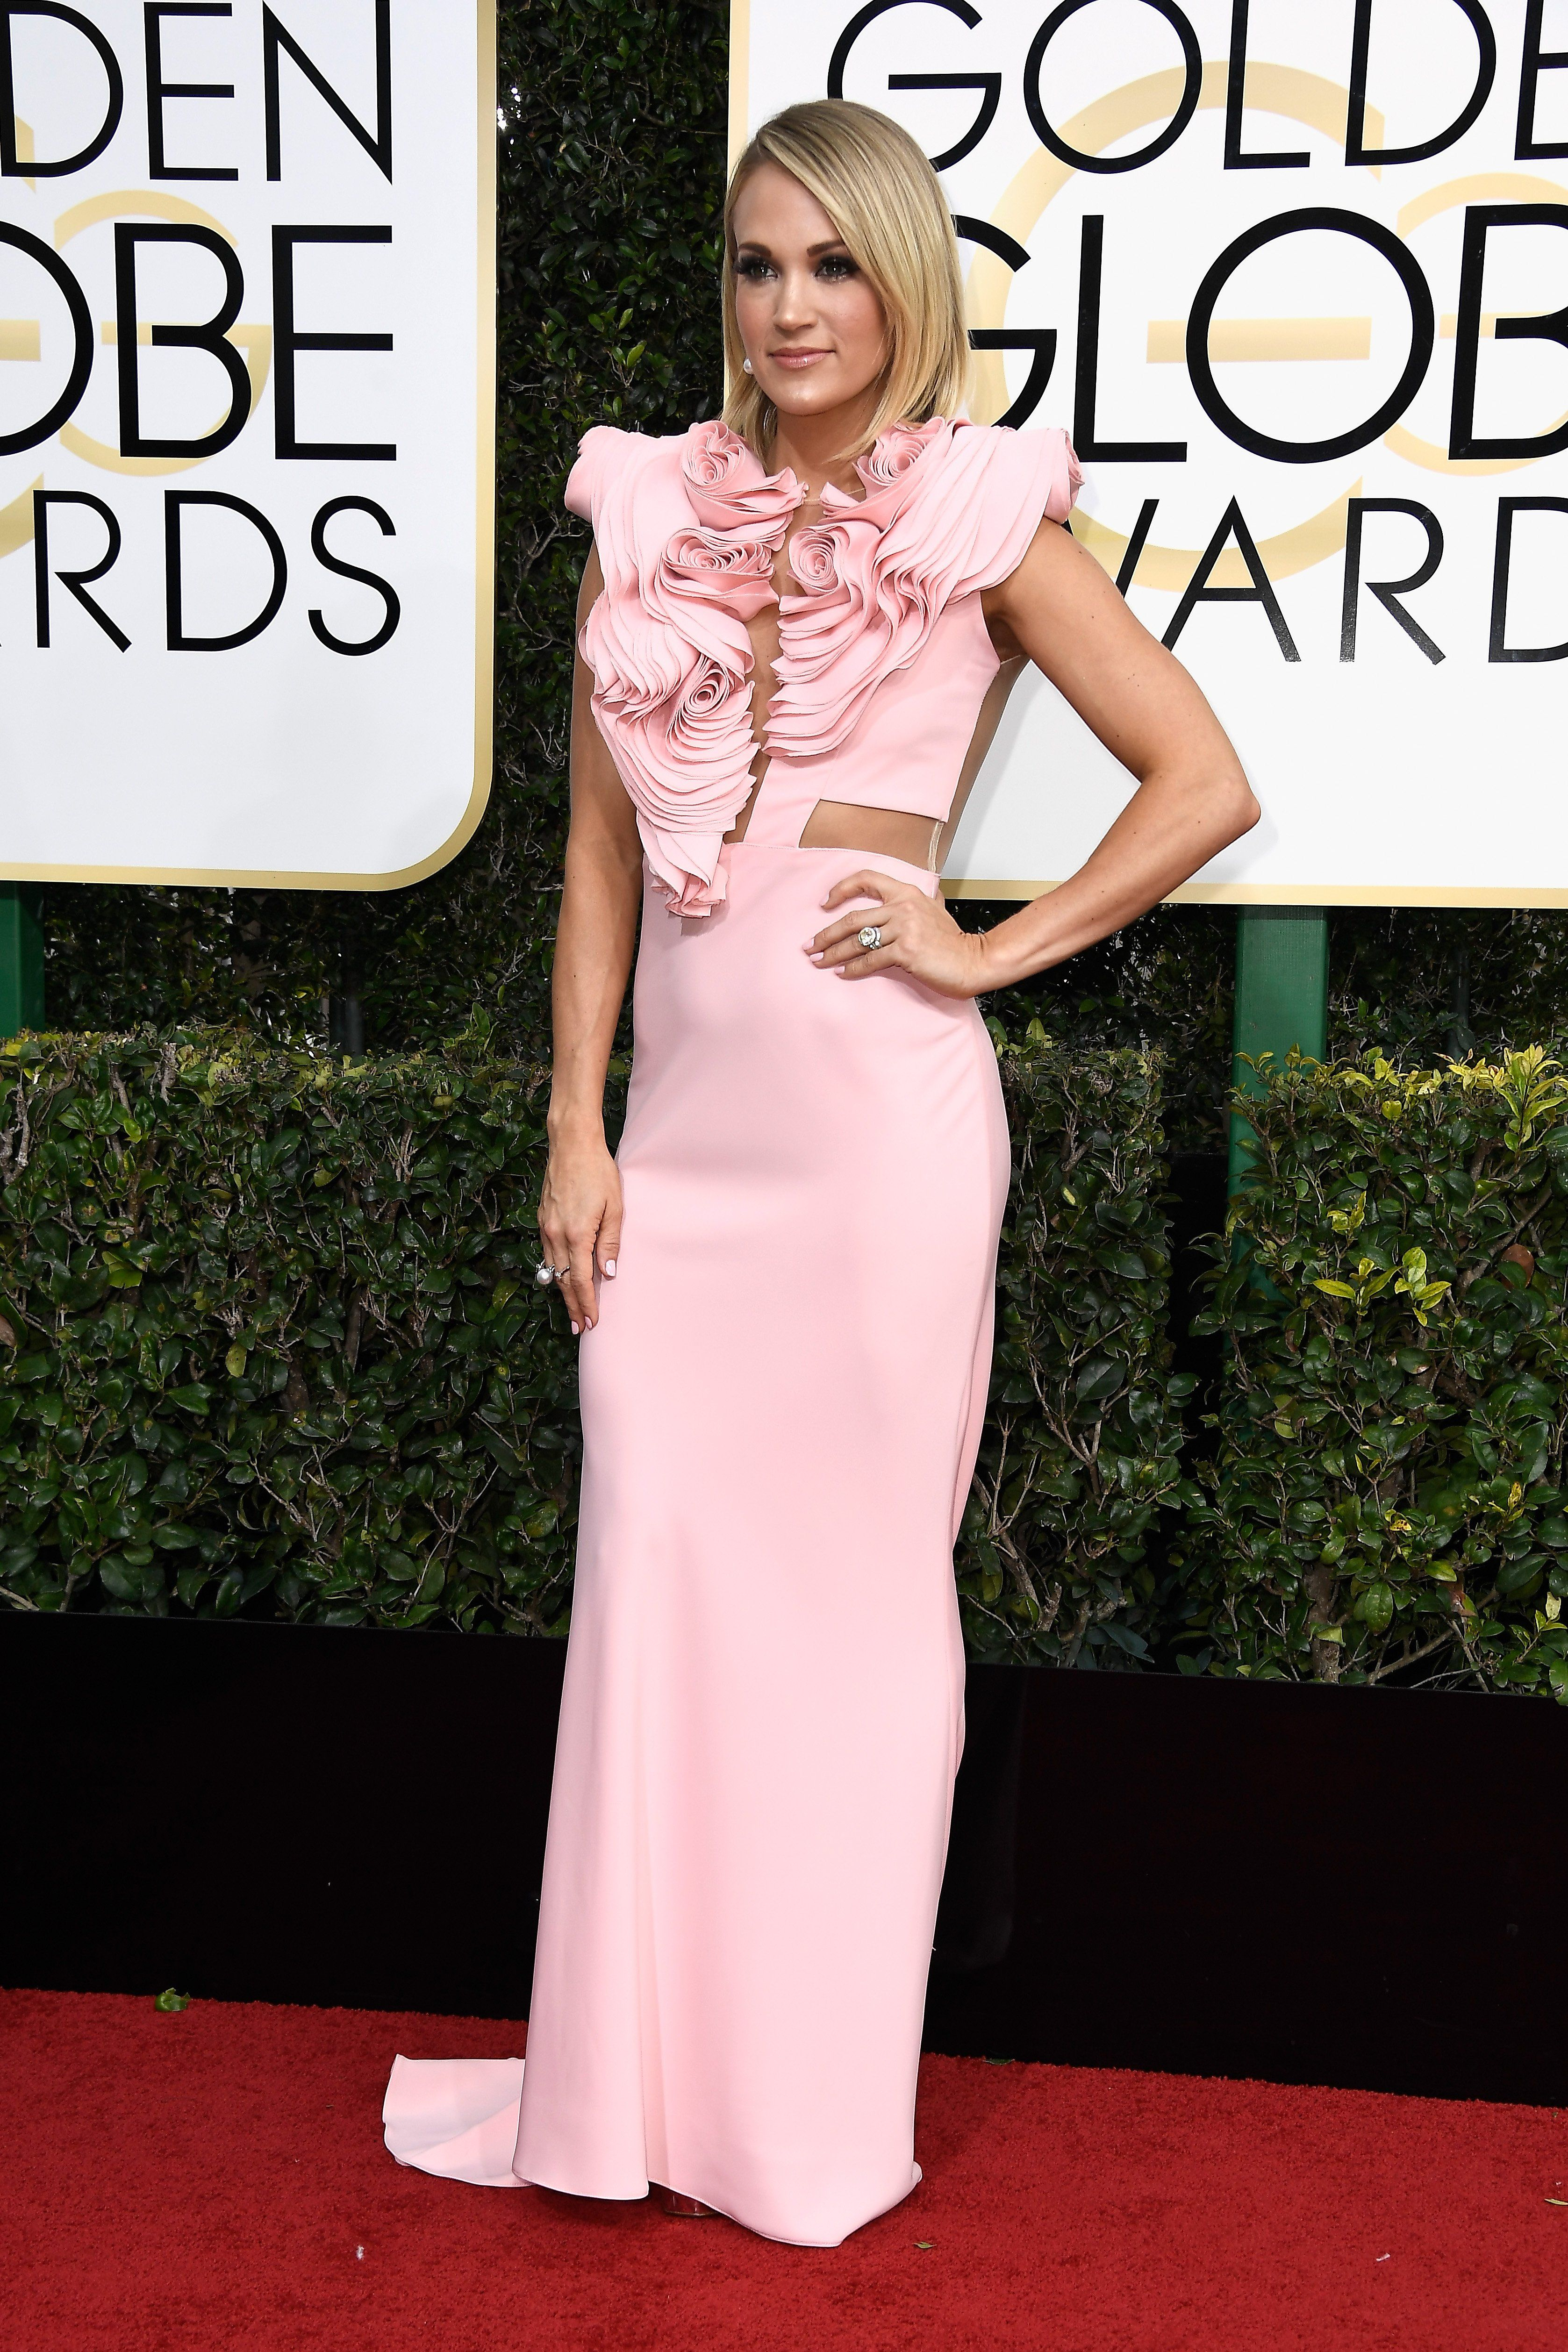 Golden Globes 2017: Fashion—Live From the Red Carpet | Rojo y Traje